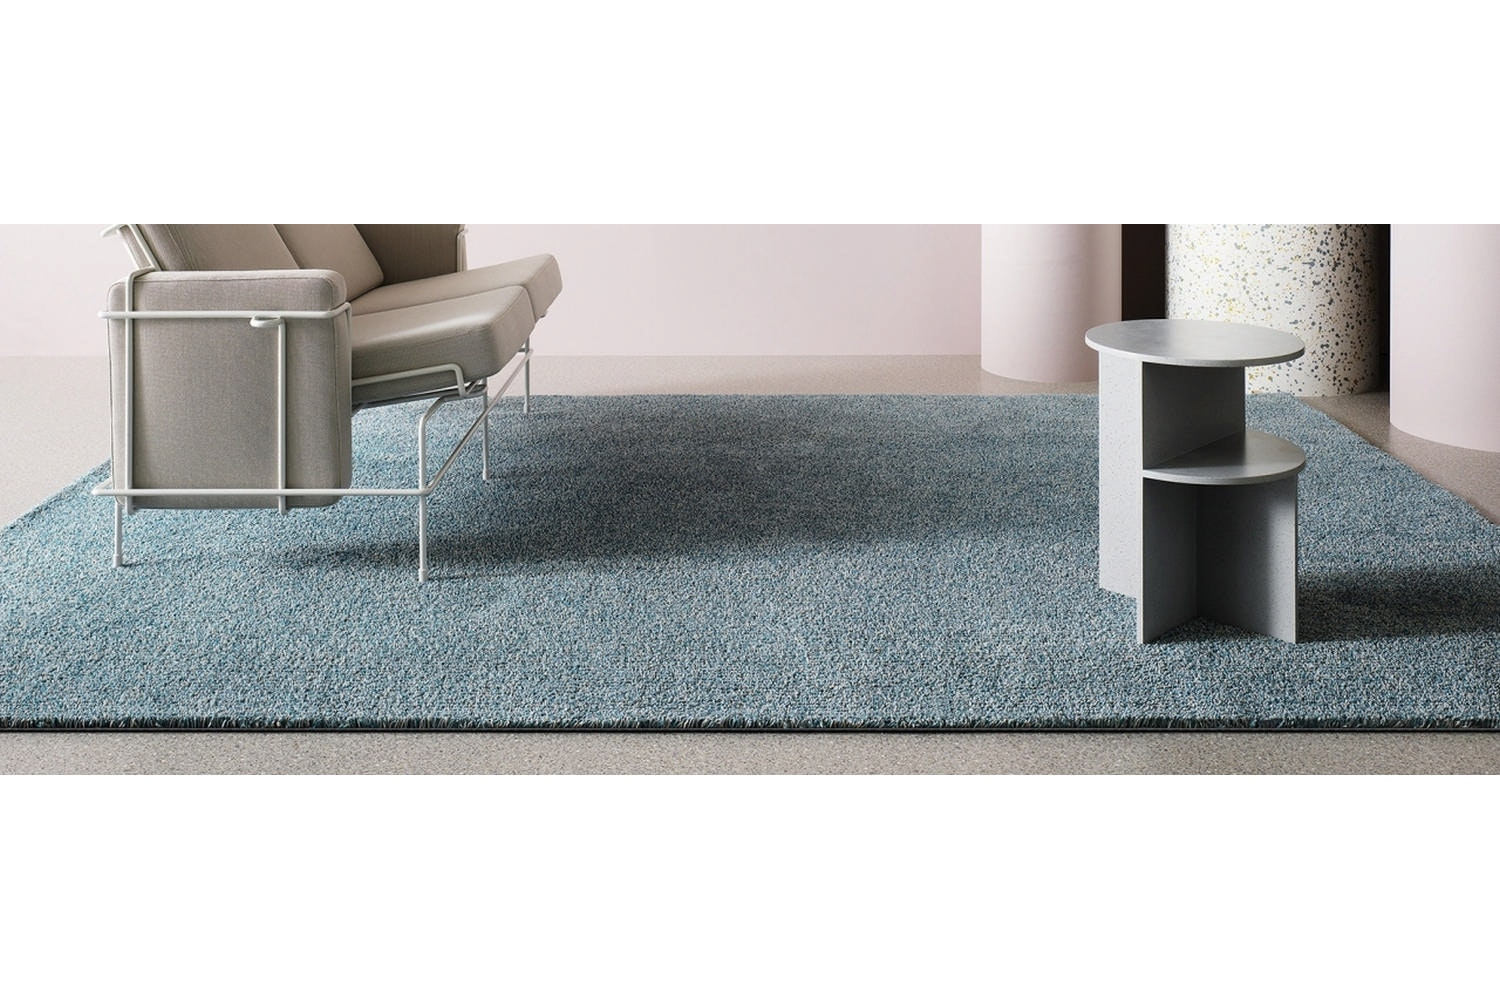 Gry Hand Tufted Rug by Gunilla Lagerhem Ullberg for Kasthall